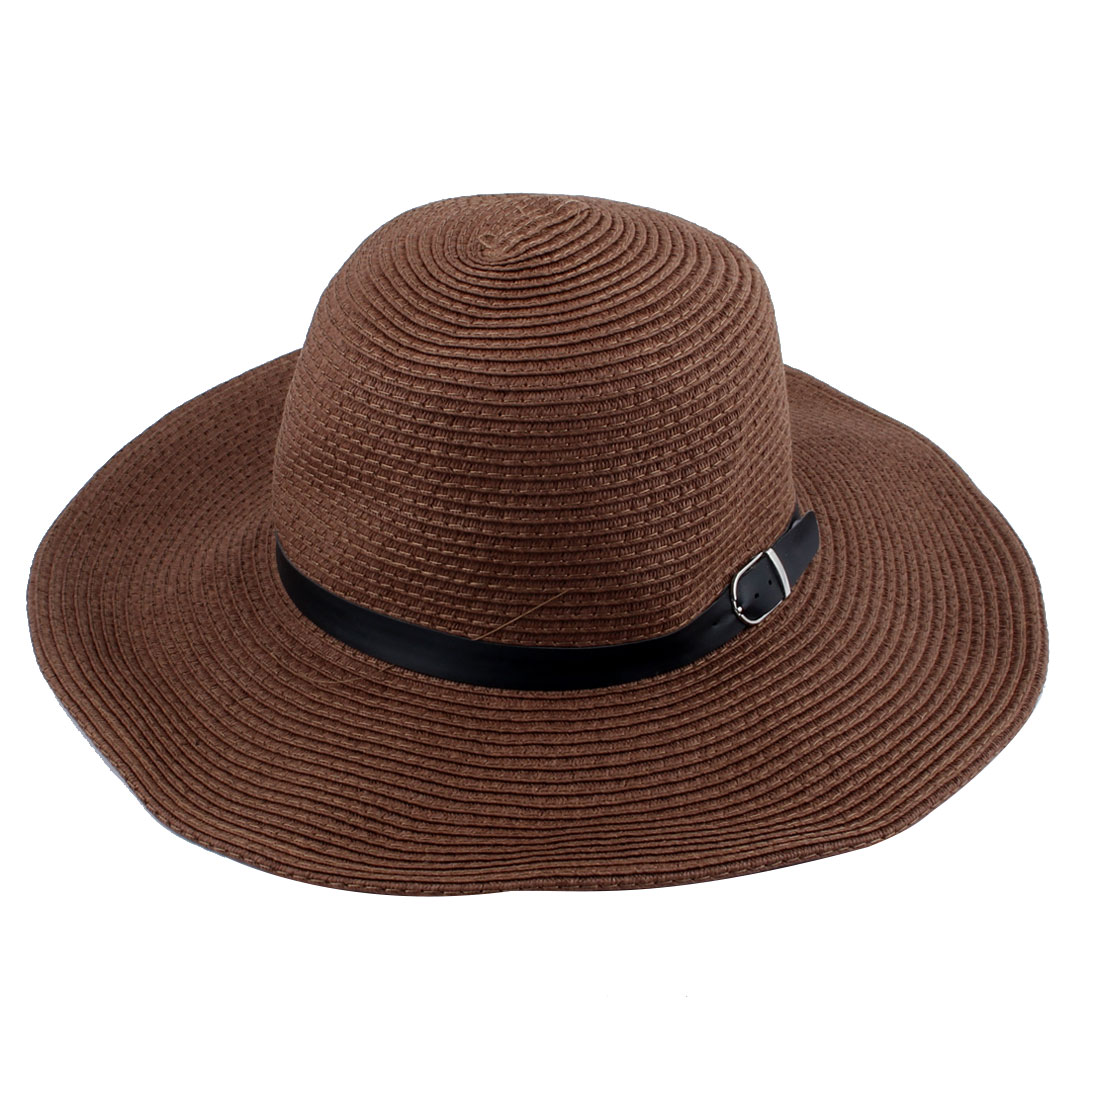 Fisherman Straw Outdoor Sports Adjustable Strap Wide Brim Sun Protector Boonie Summer Cap Fishing Hat Brown